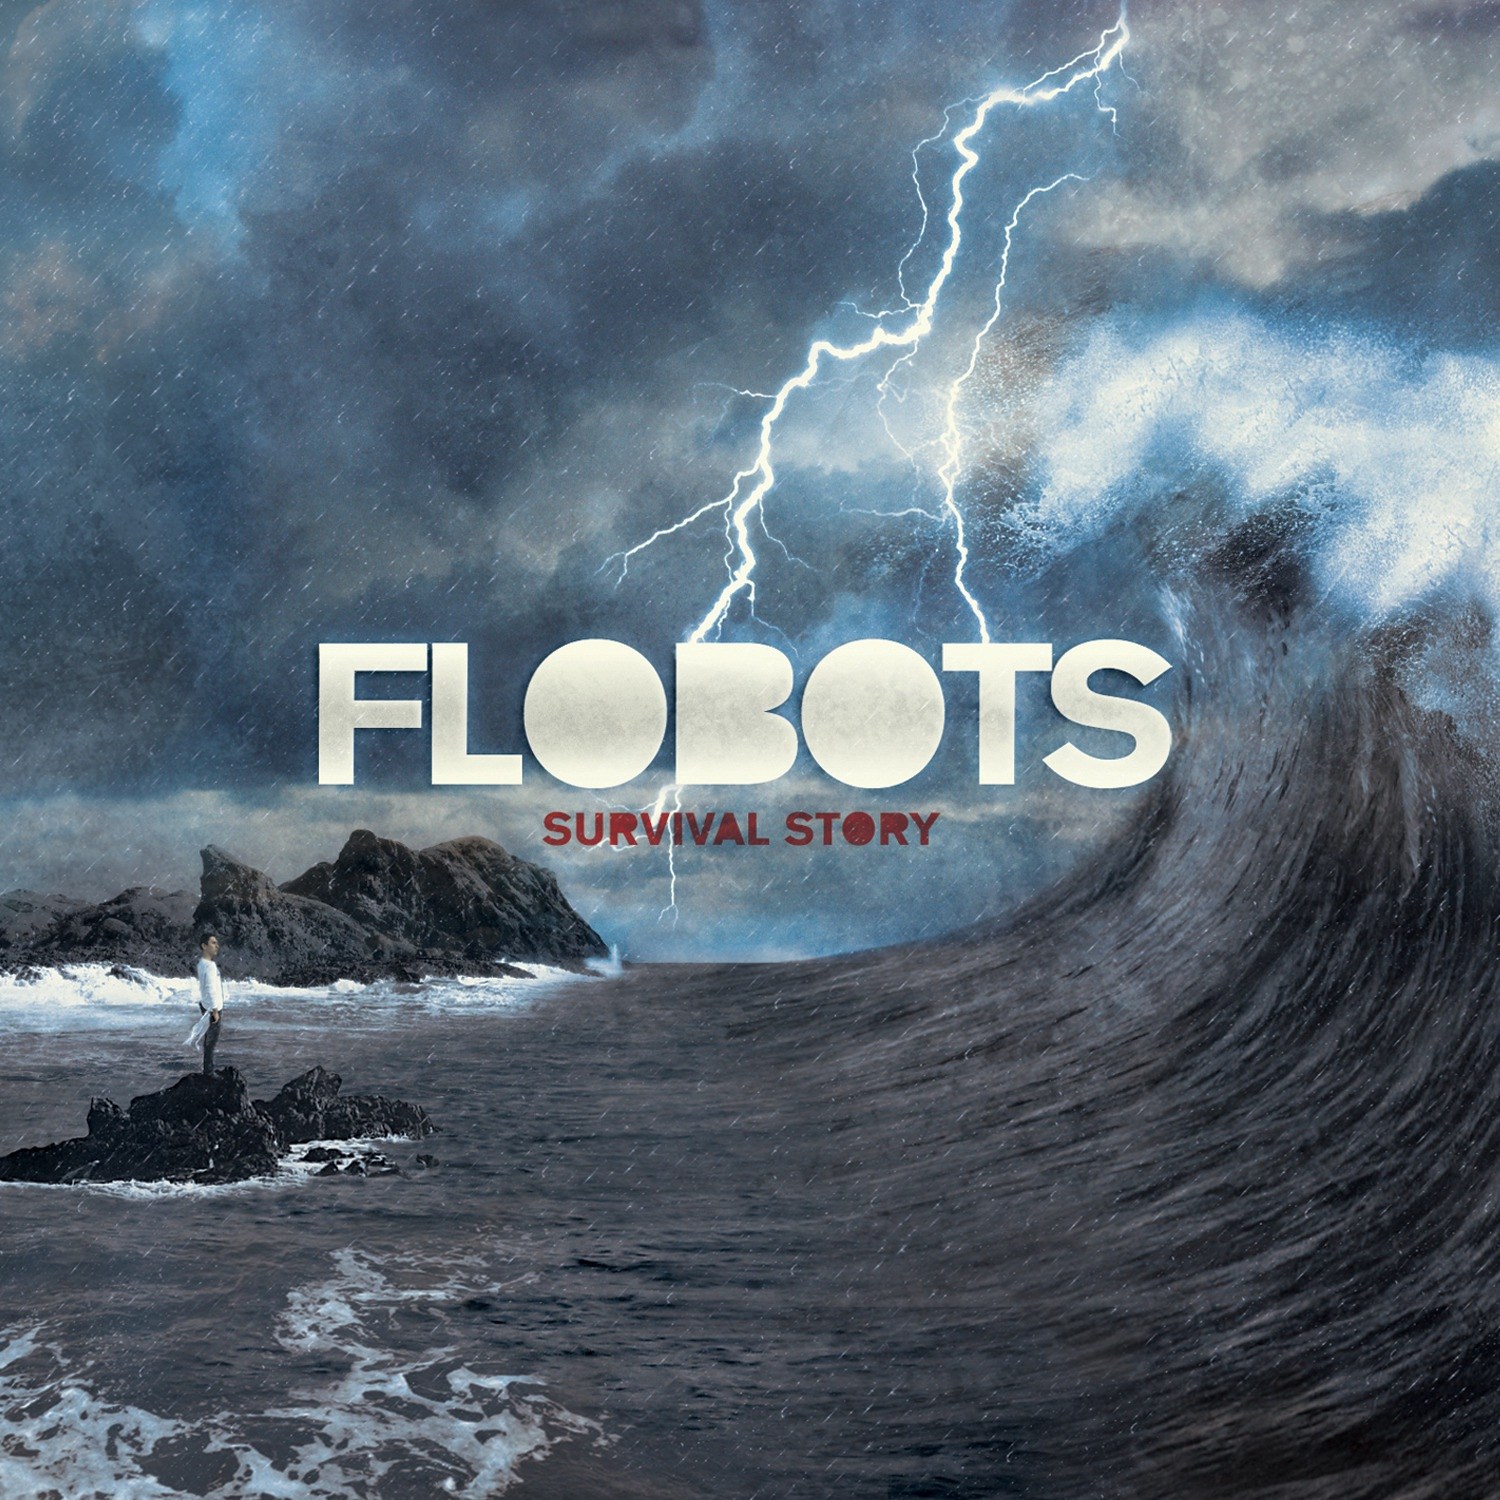 Flobots album Survival Story